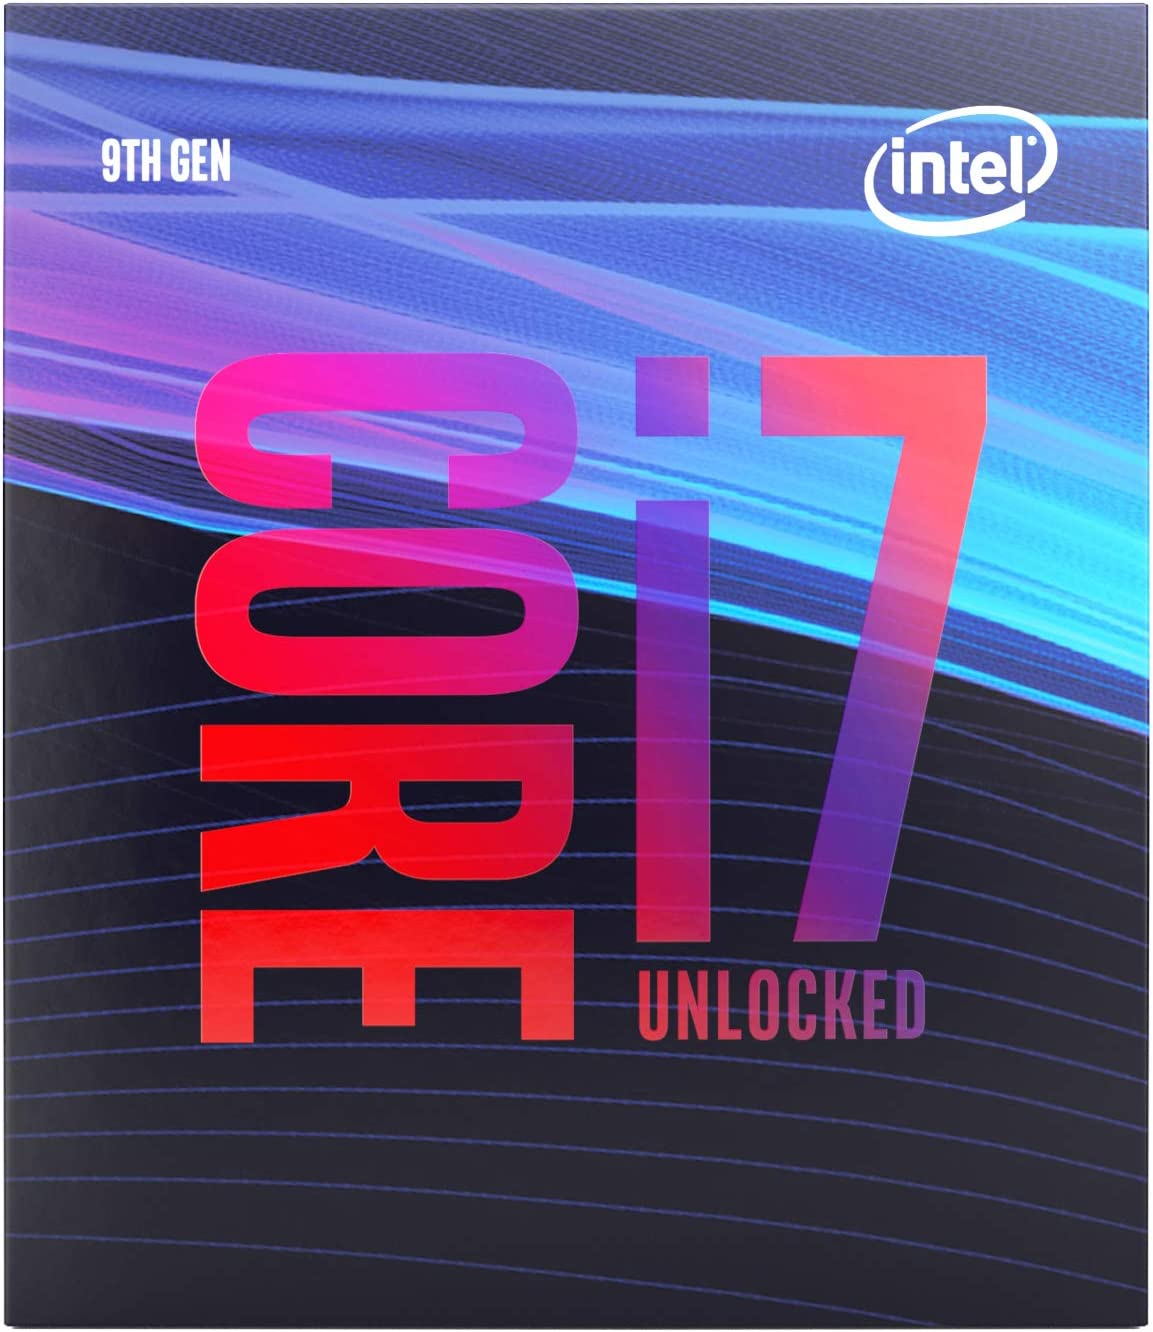 Intel Core i7 9700K, Best Affordable CPU for Gaming 2020